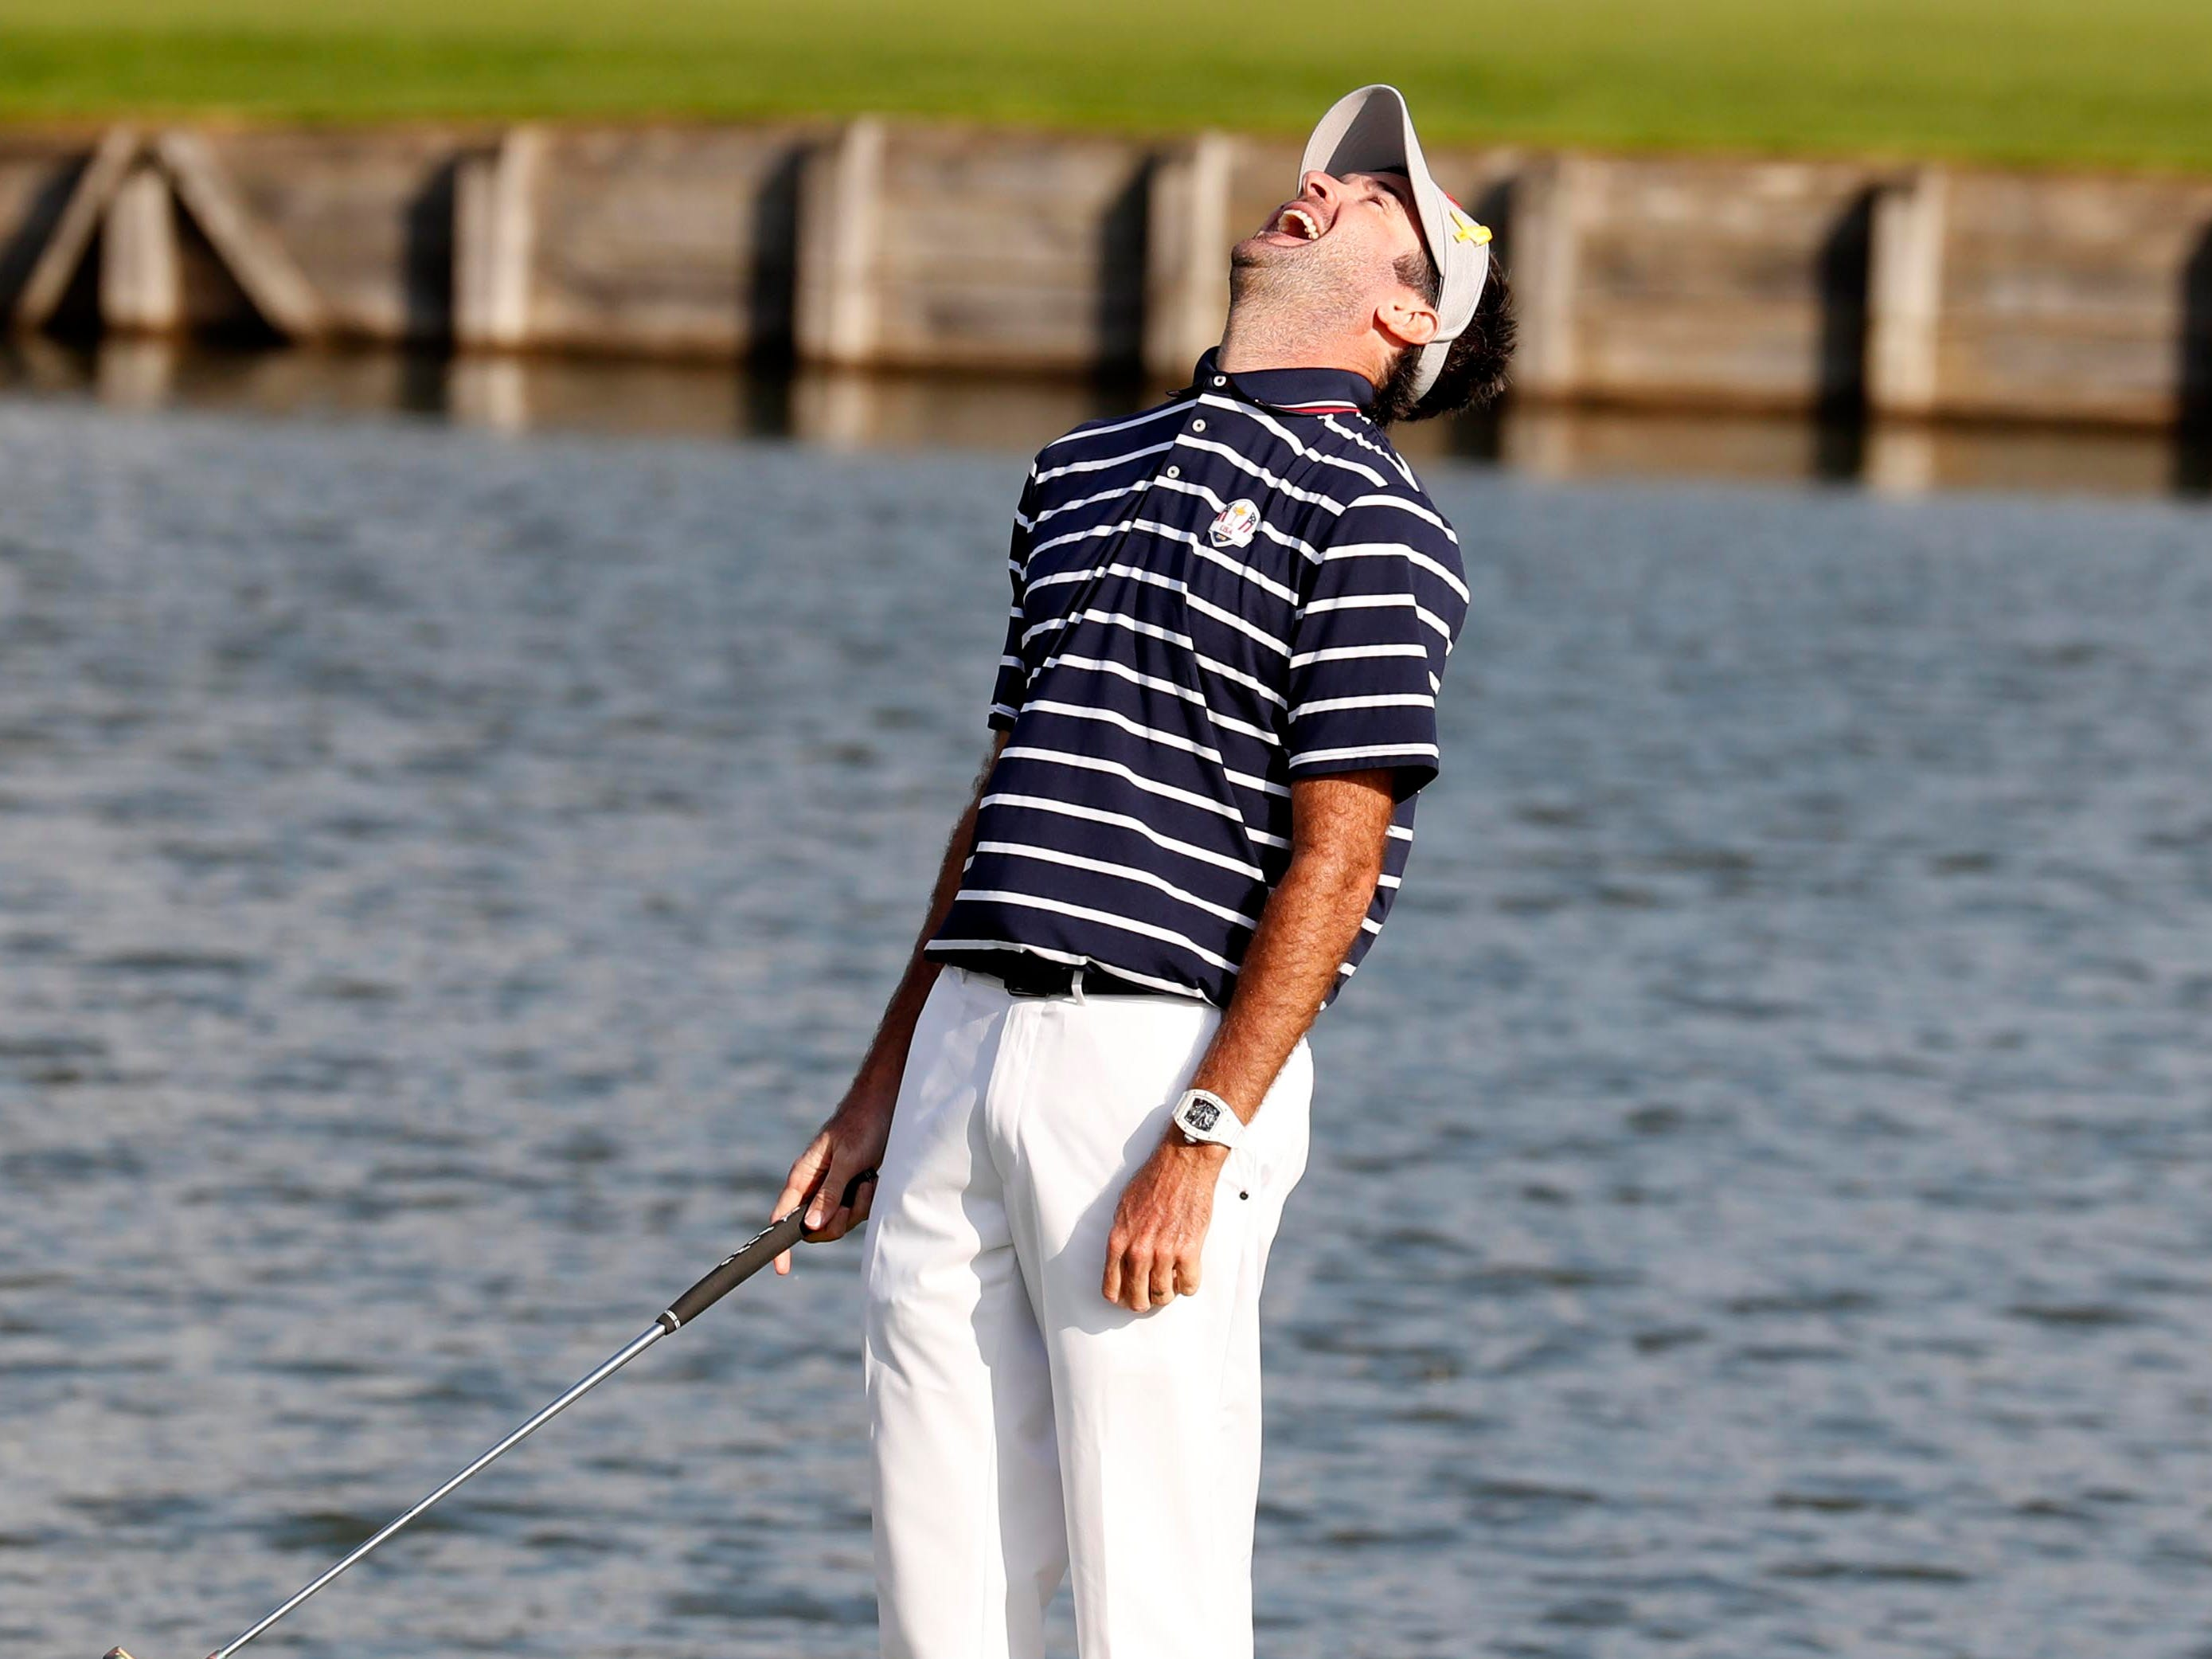 Bubba Watson reacts to missing a putt on the 15th green during the Ryder Cup Friday afternoon matches.